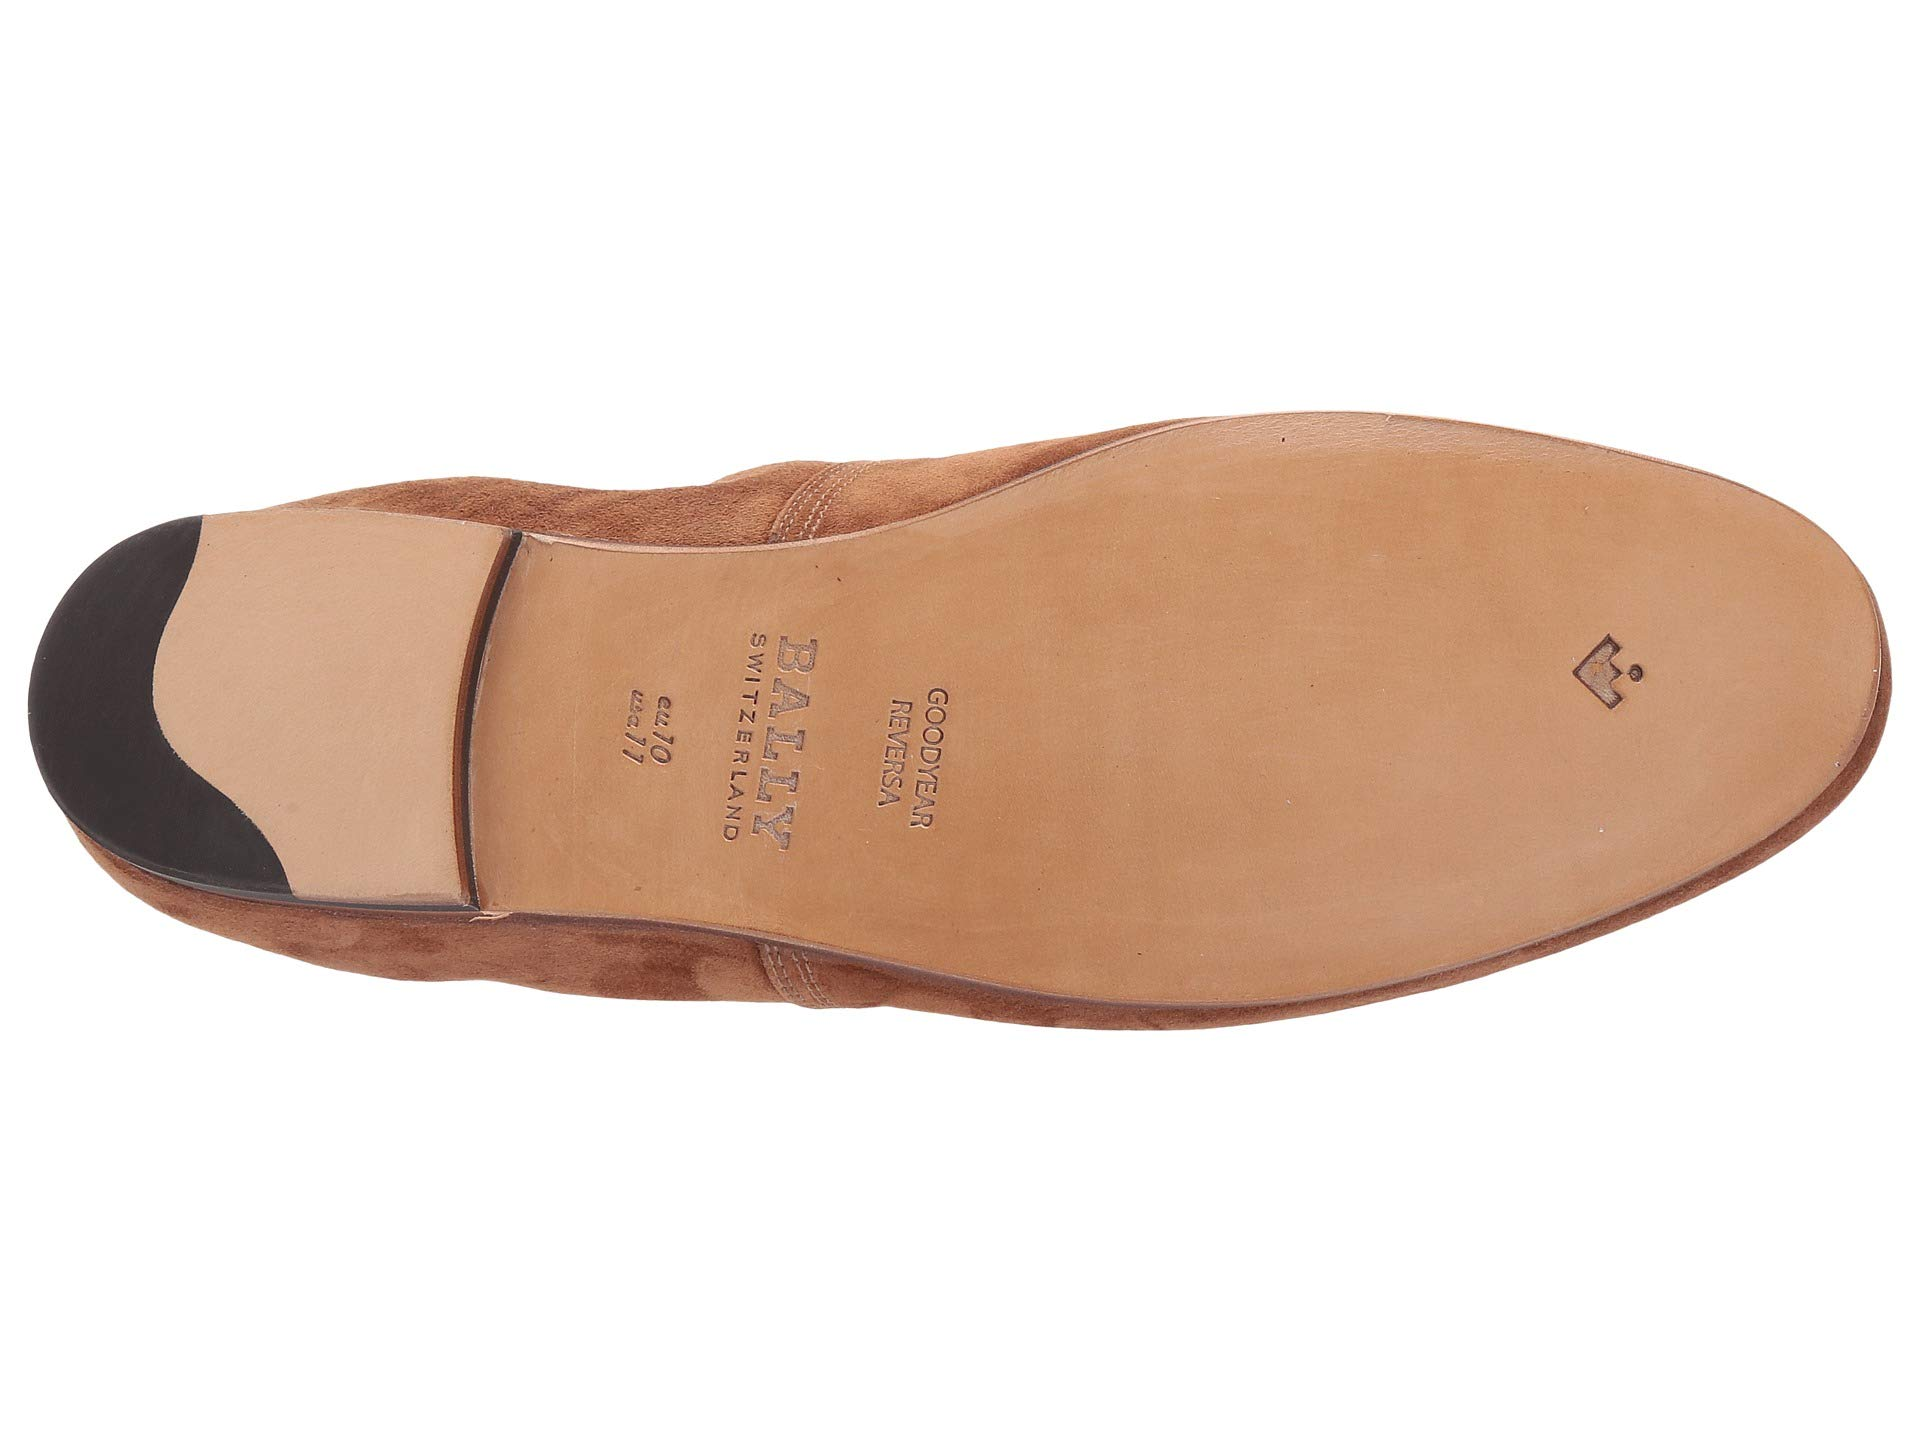 Bally Collapsible Suede Loafer Plank At wvN0m8nO